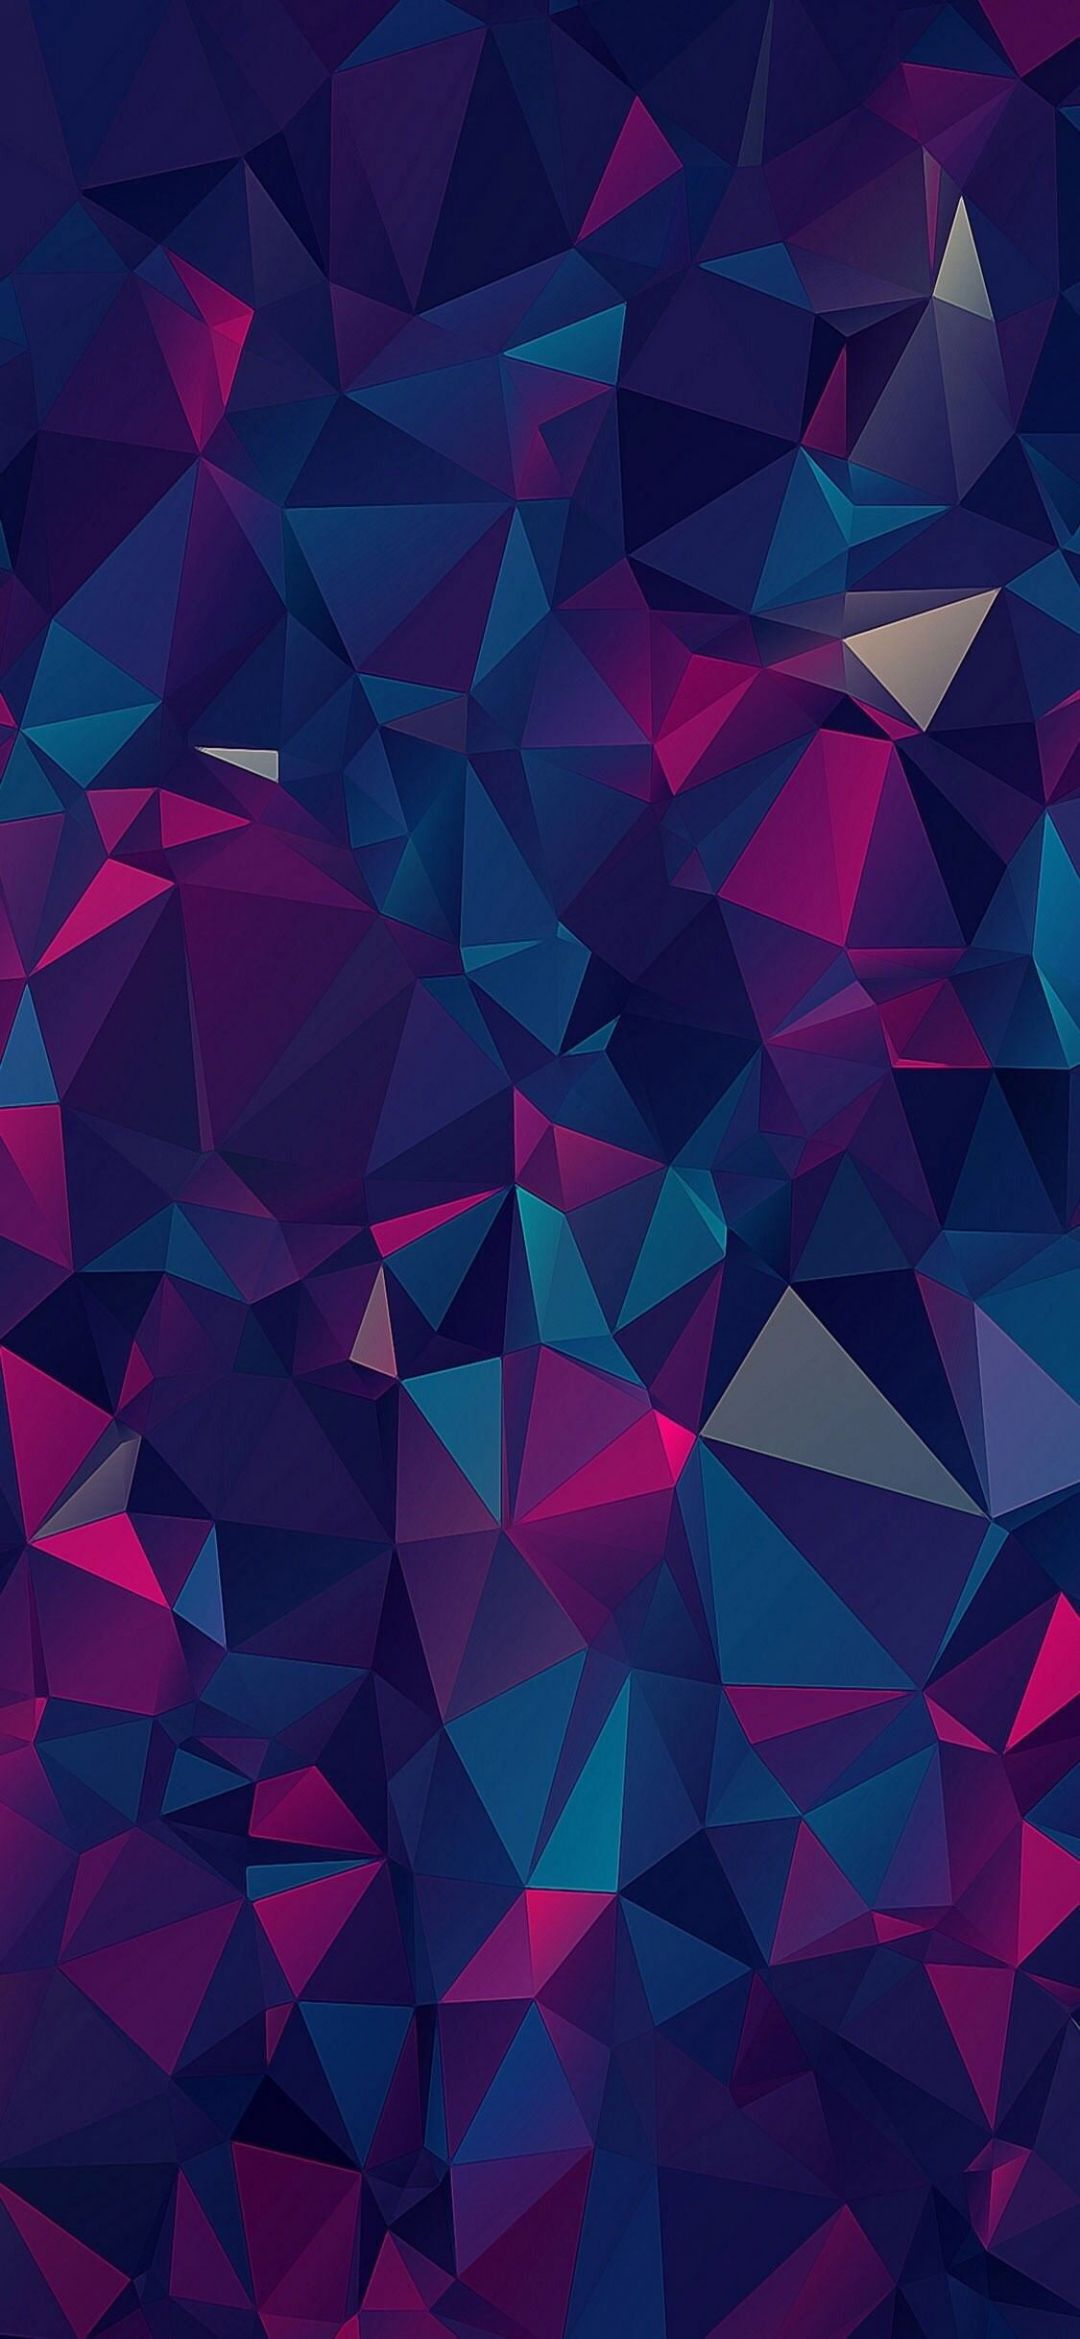 45 Pink And Blue Abstract Android Iphone Desktop Hd Backgrounds Wallpapers 1080p 4k 1125x2436 2020